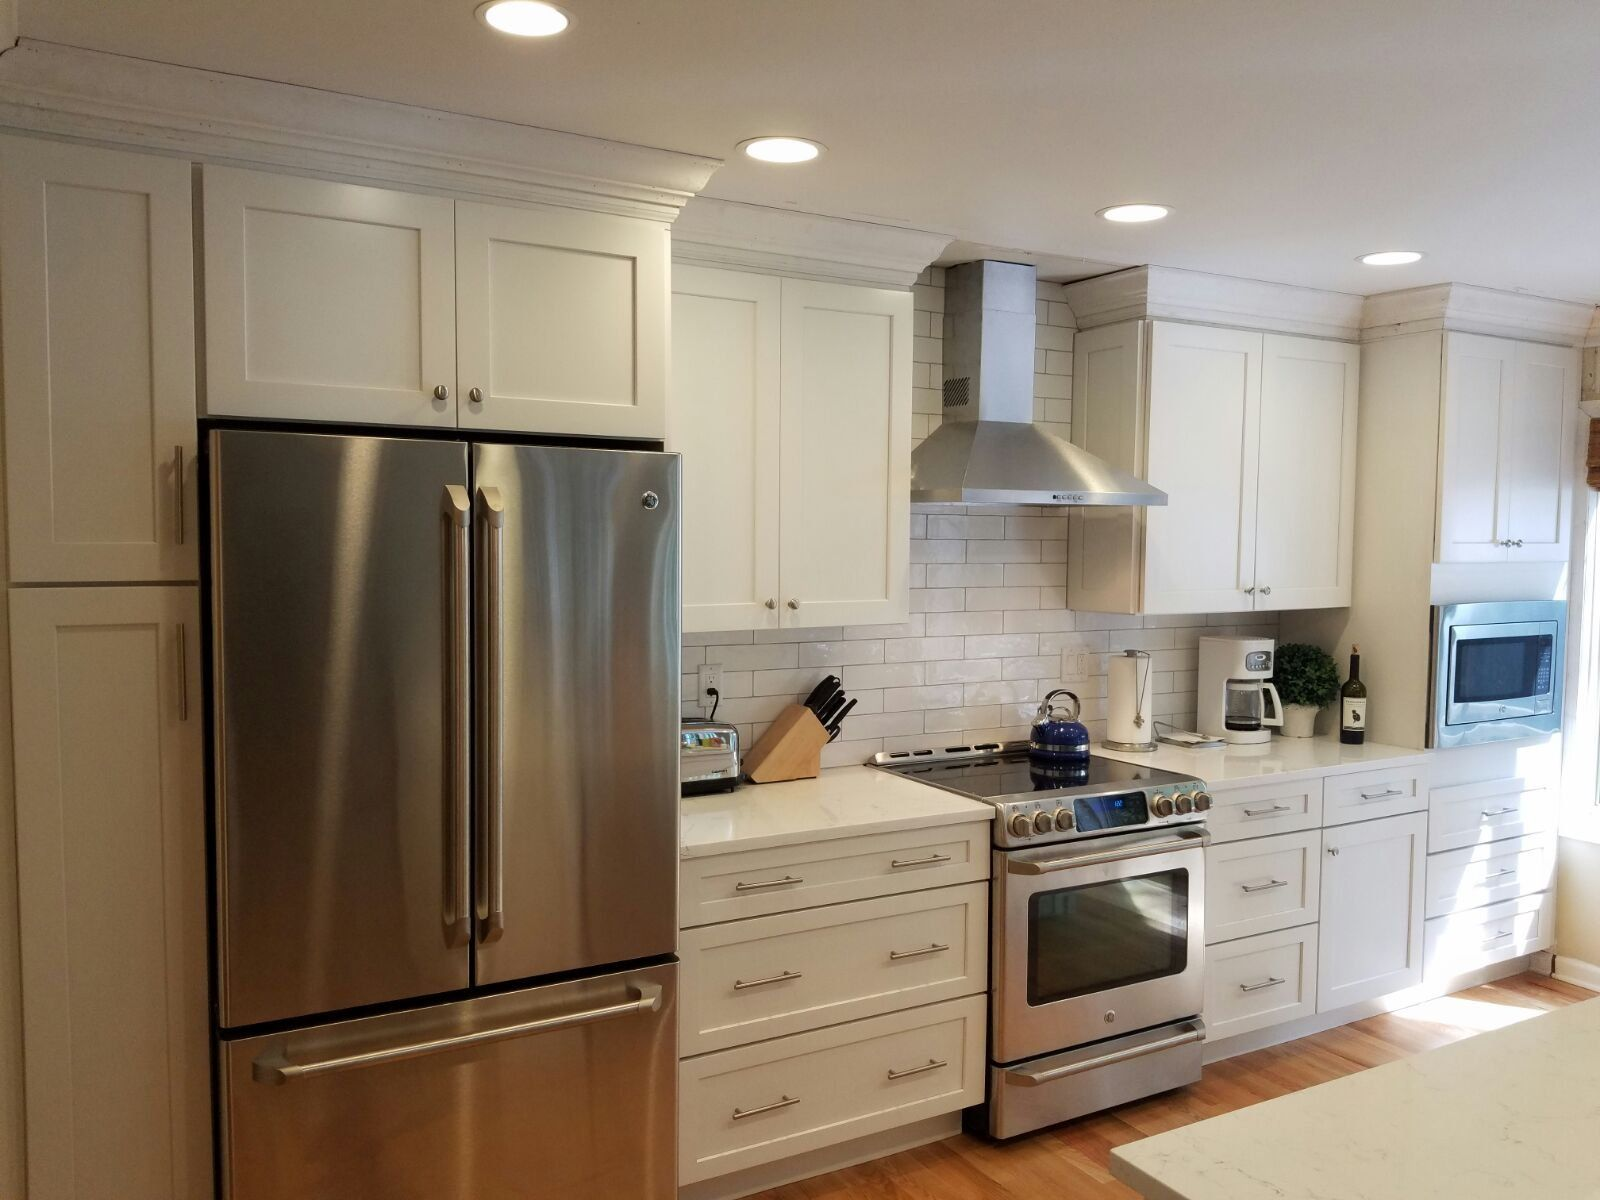 I Really Love The Clean Look Of These White Kitchen Cabinets I Like How The White Look Kitchen And Bath Showroom Kitchen Decor Apartment Wood Kitchen Cabinets